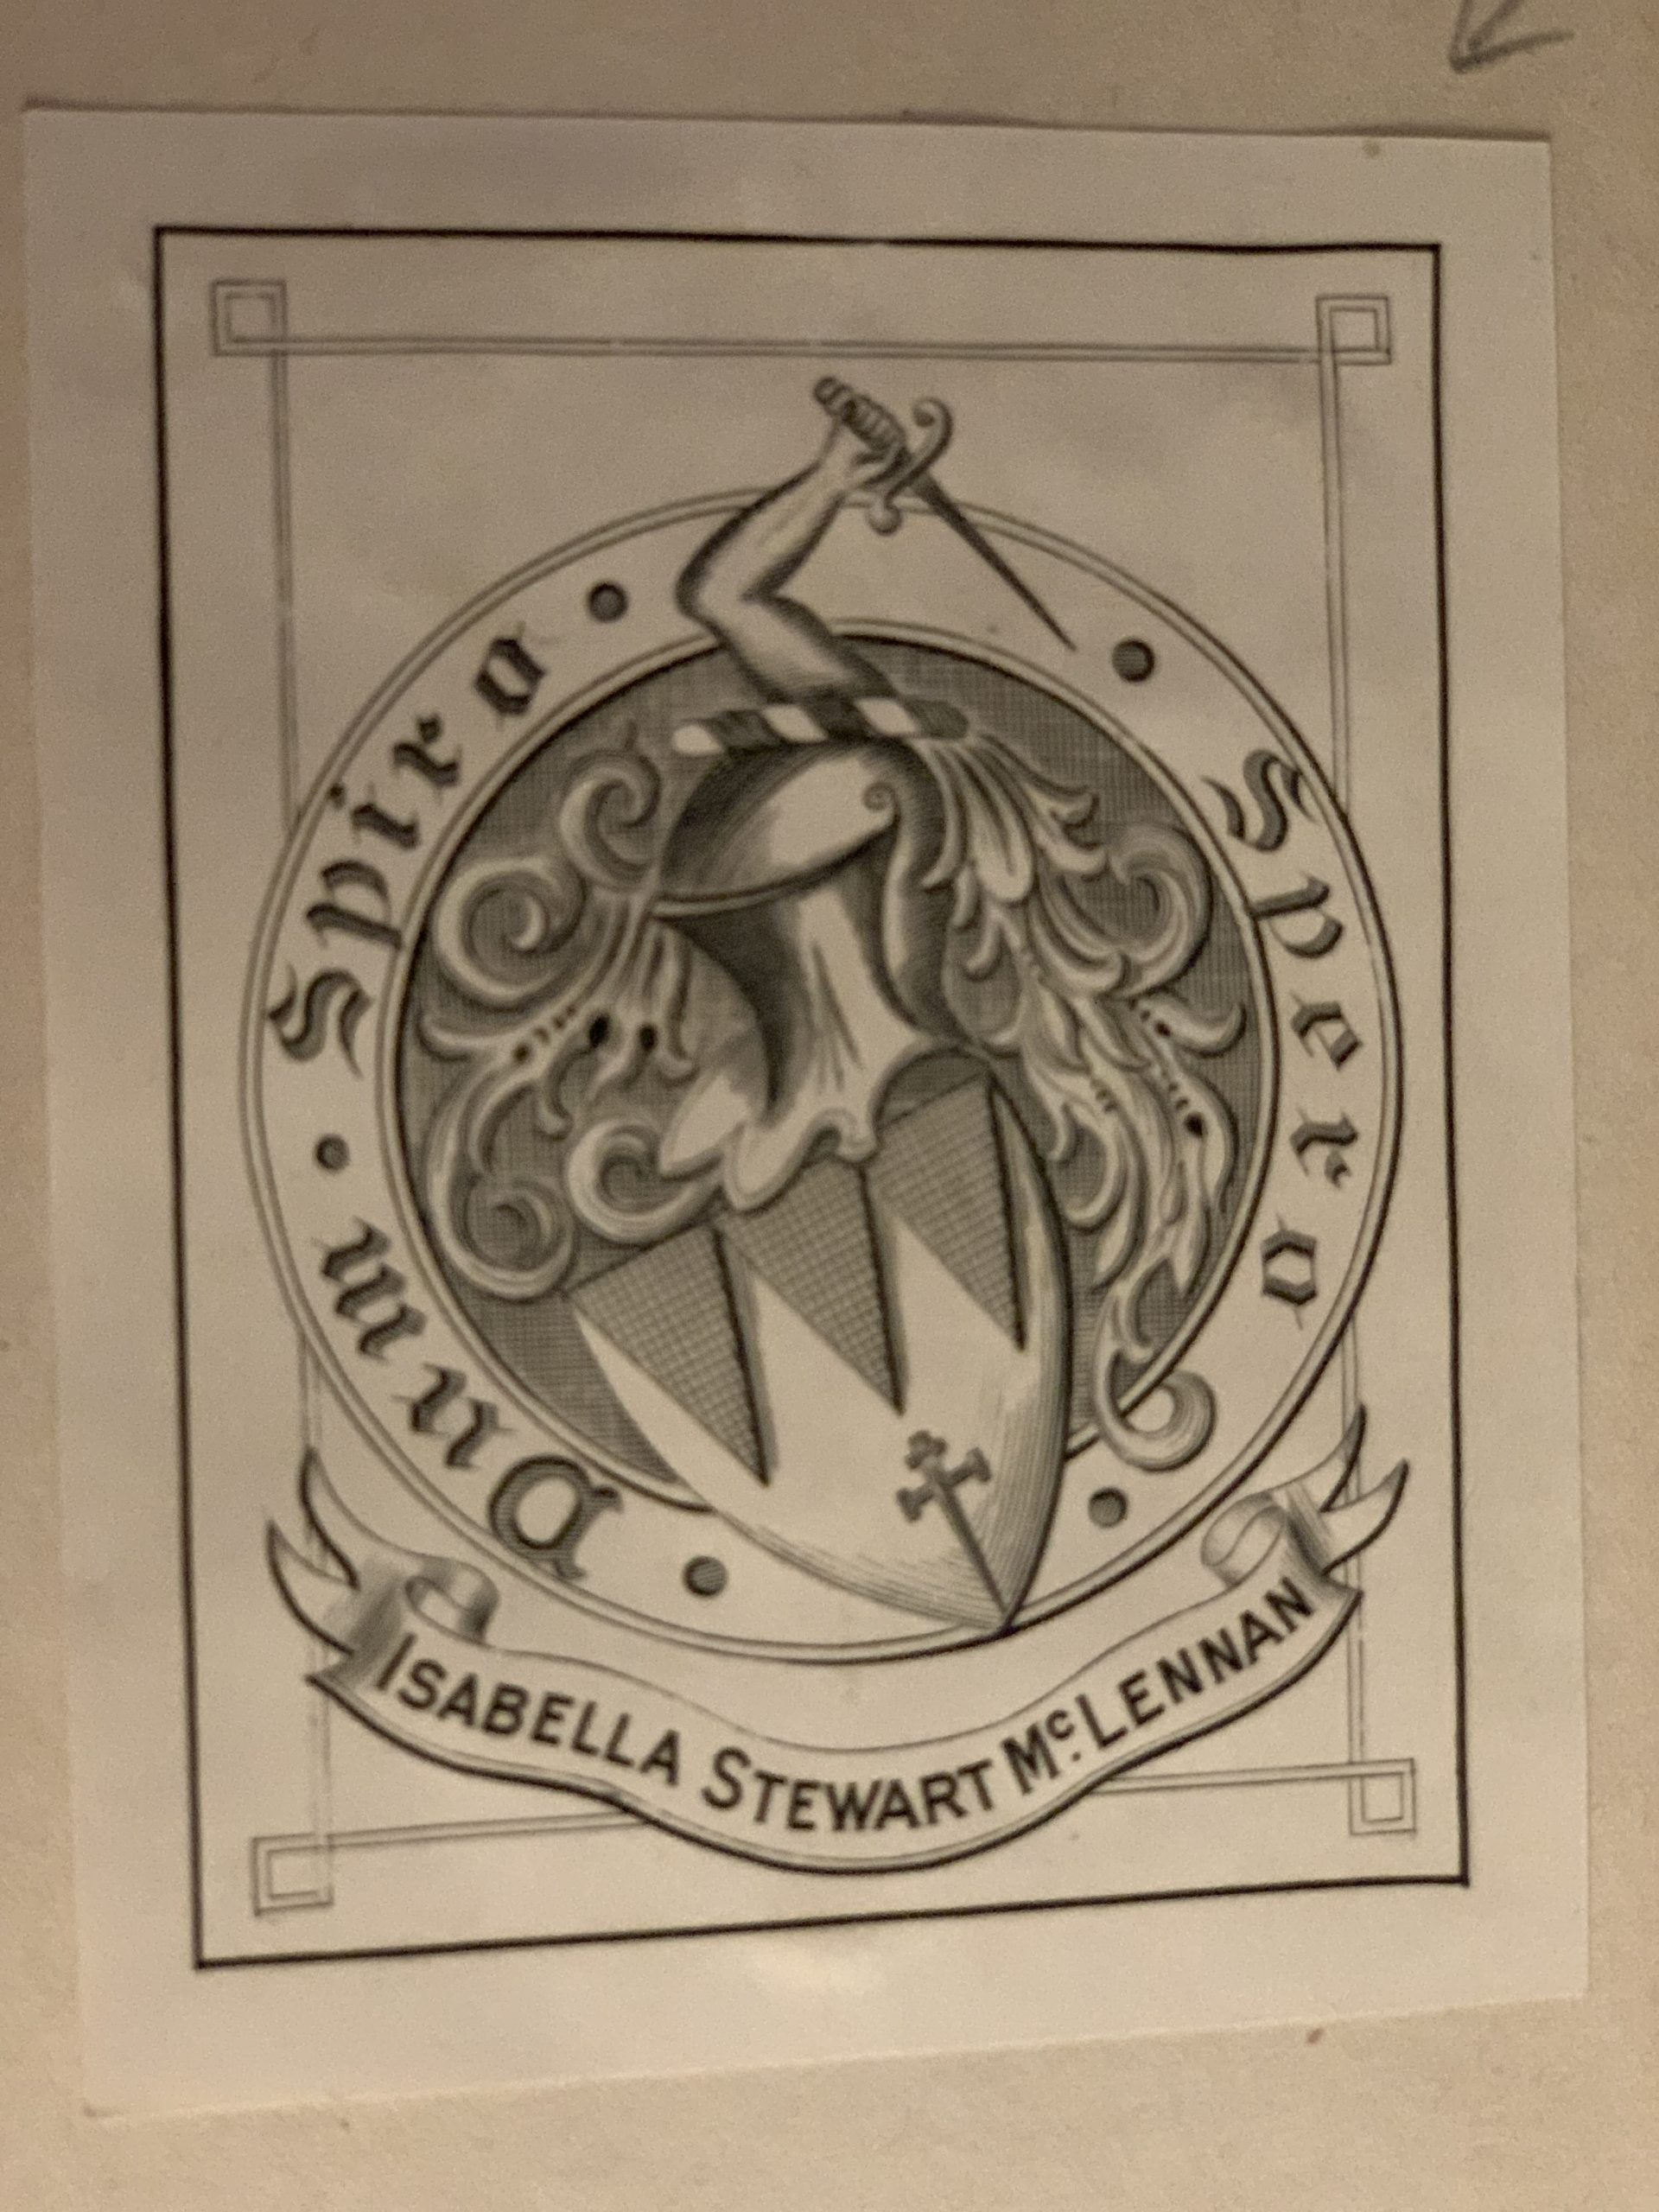 Bookplate of Isabella McLennan McMeekin